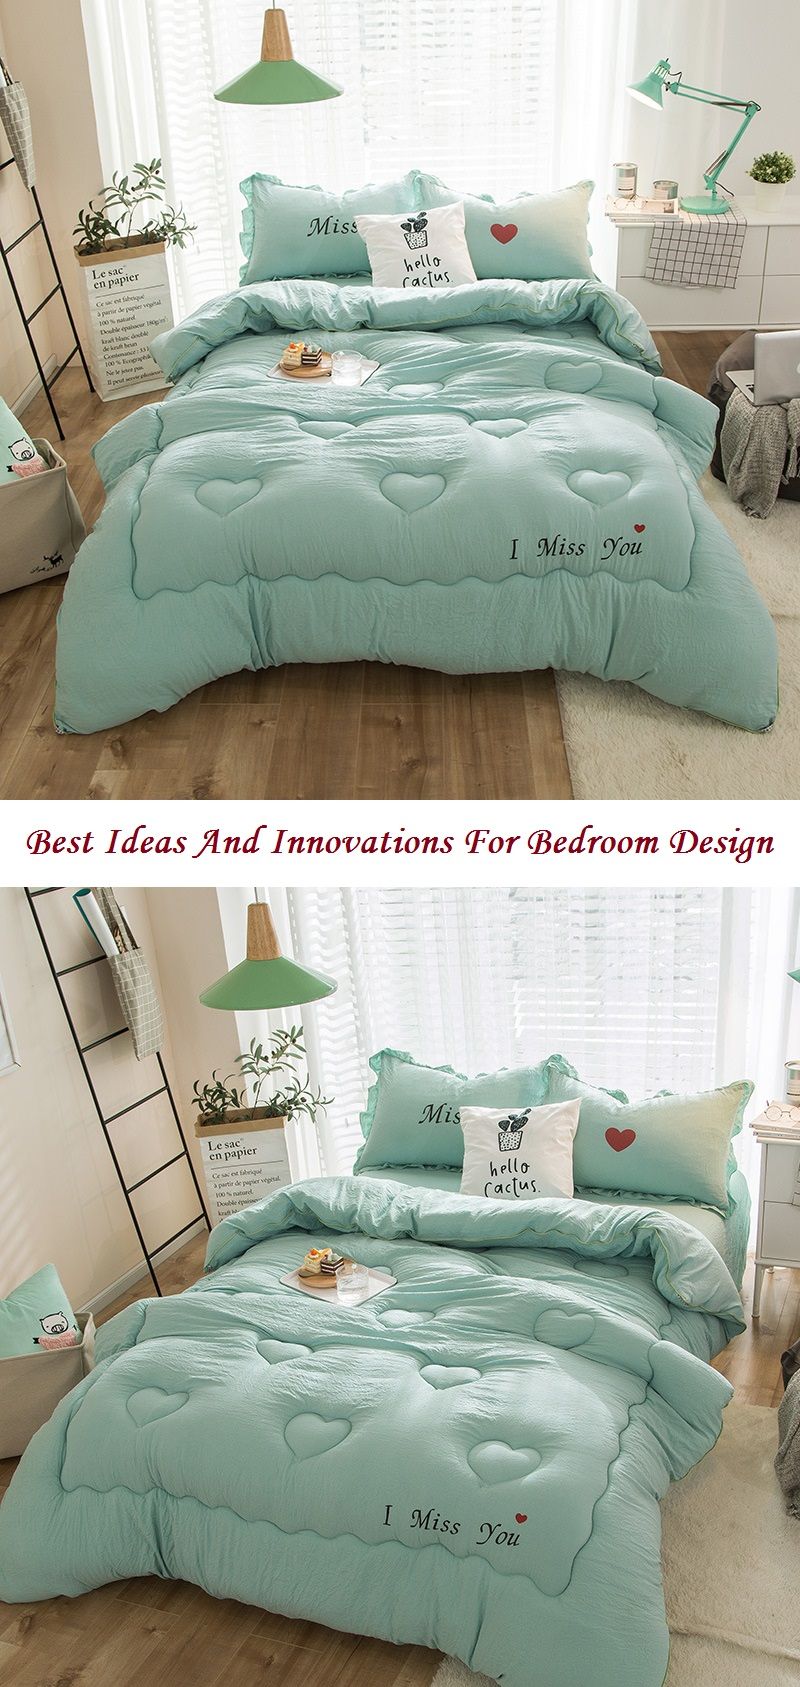 Best Ideas And Innovations For Bedroom Design